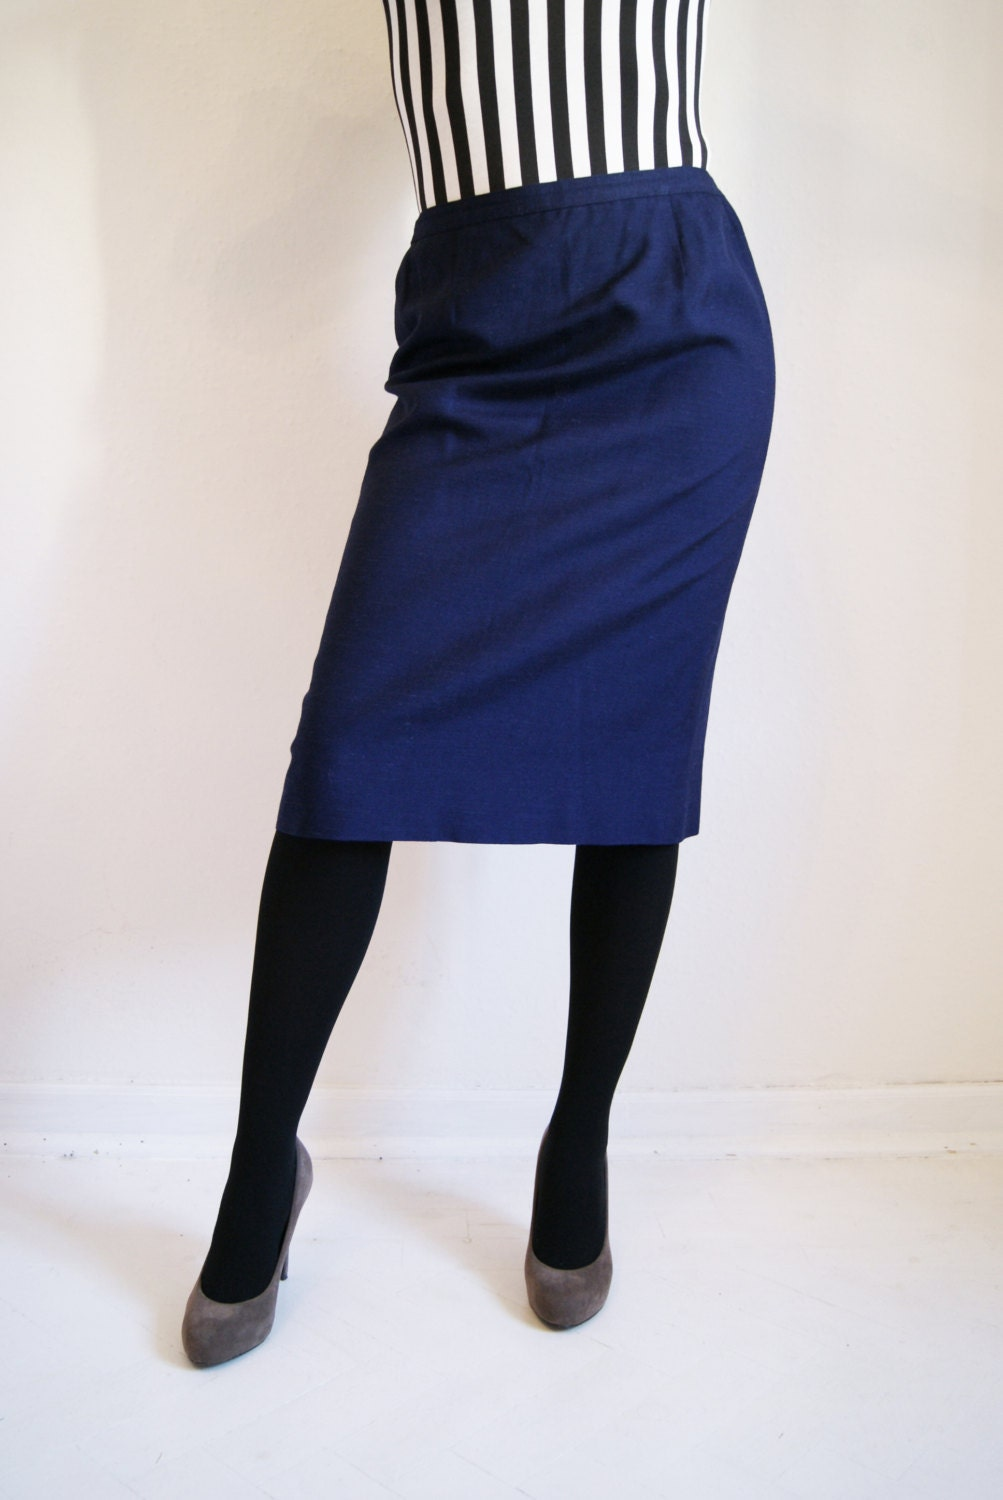 70s navy blue pencil skirt by helloothilia on etsy